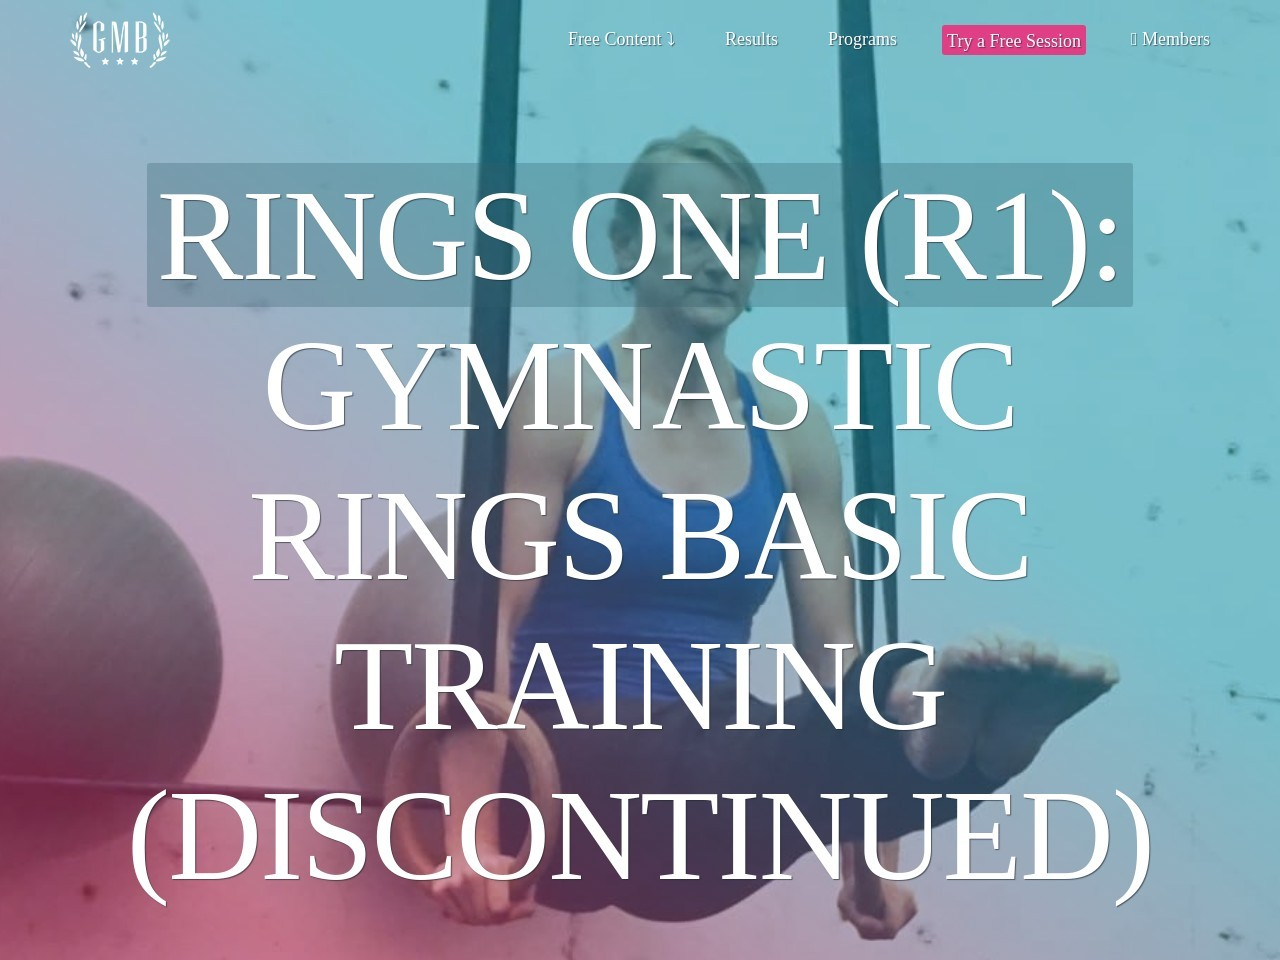 Rings One (r1): Gymnastic Workout Program